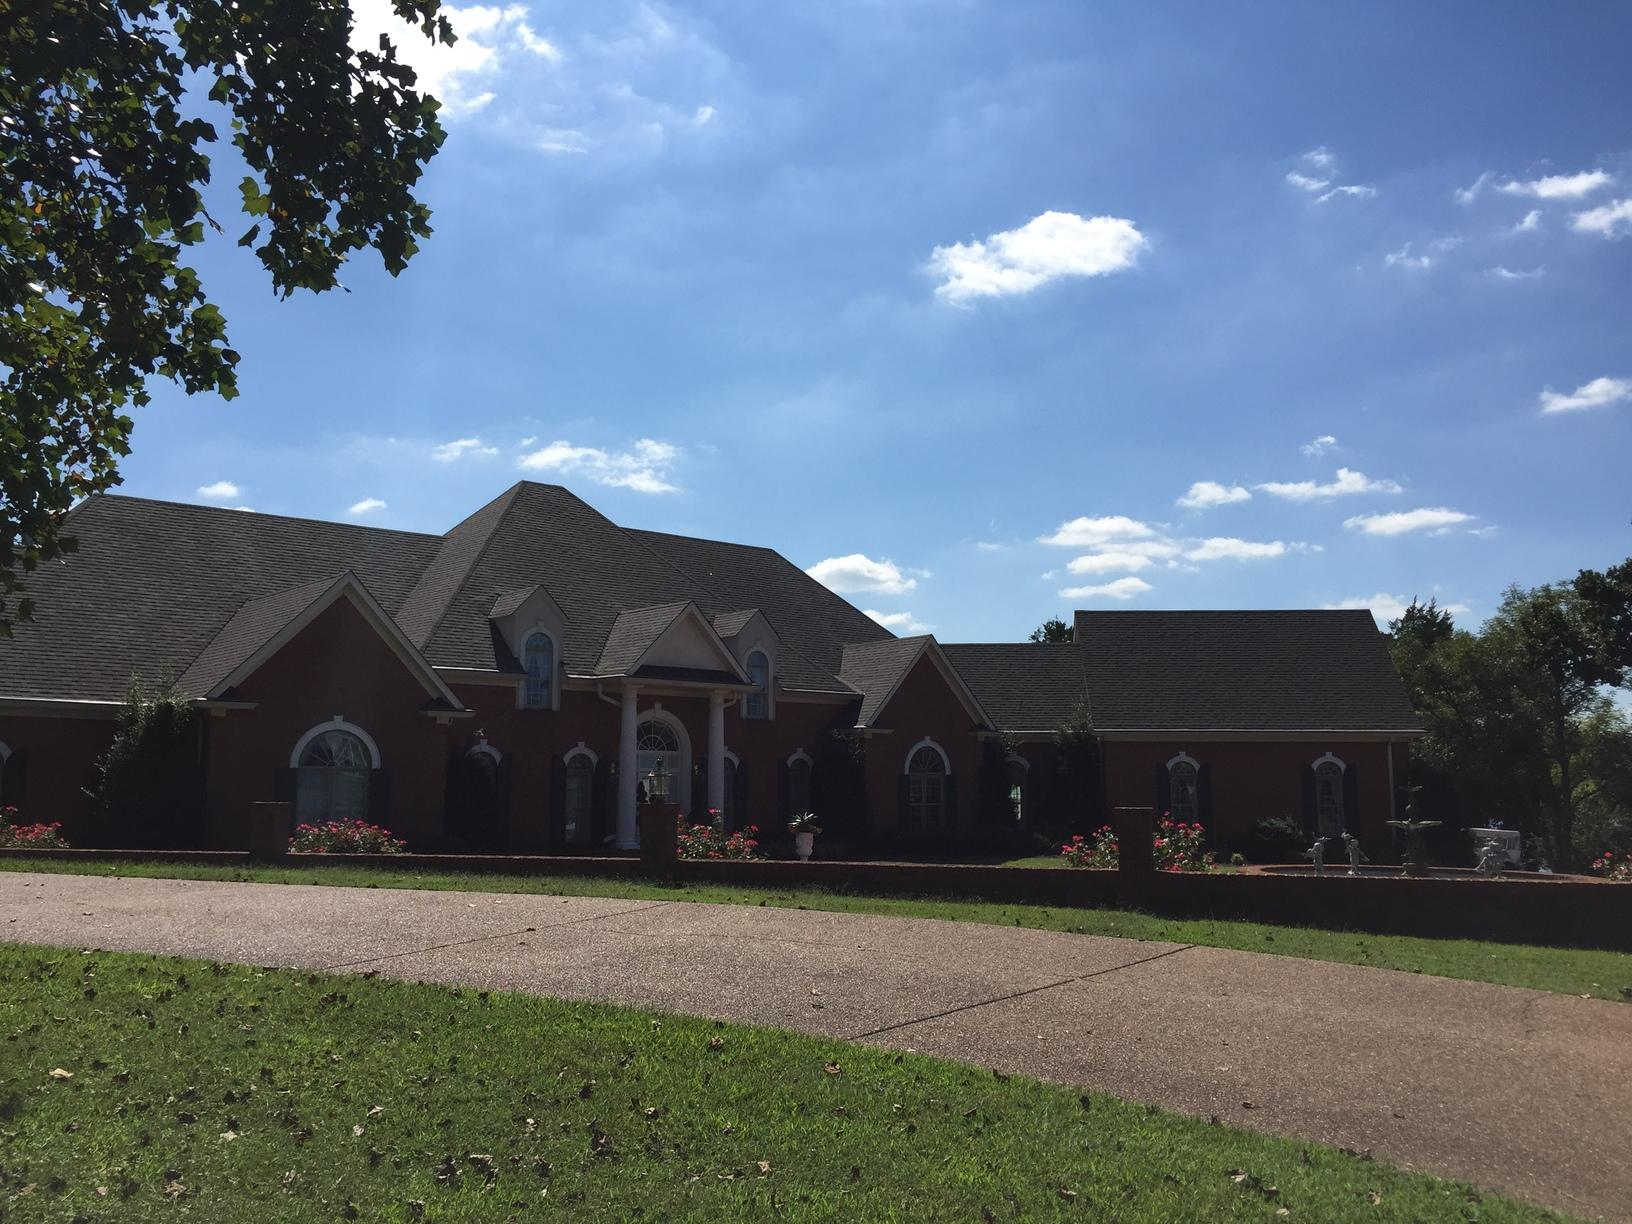 Hendersonville Hail Damage Roof Replacement - After Photo